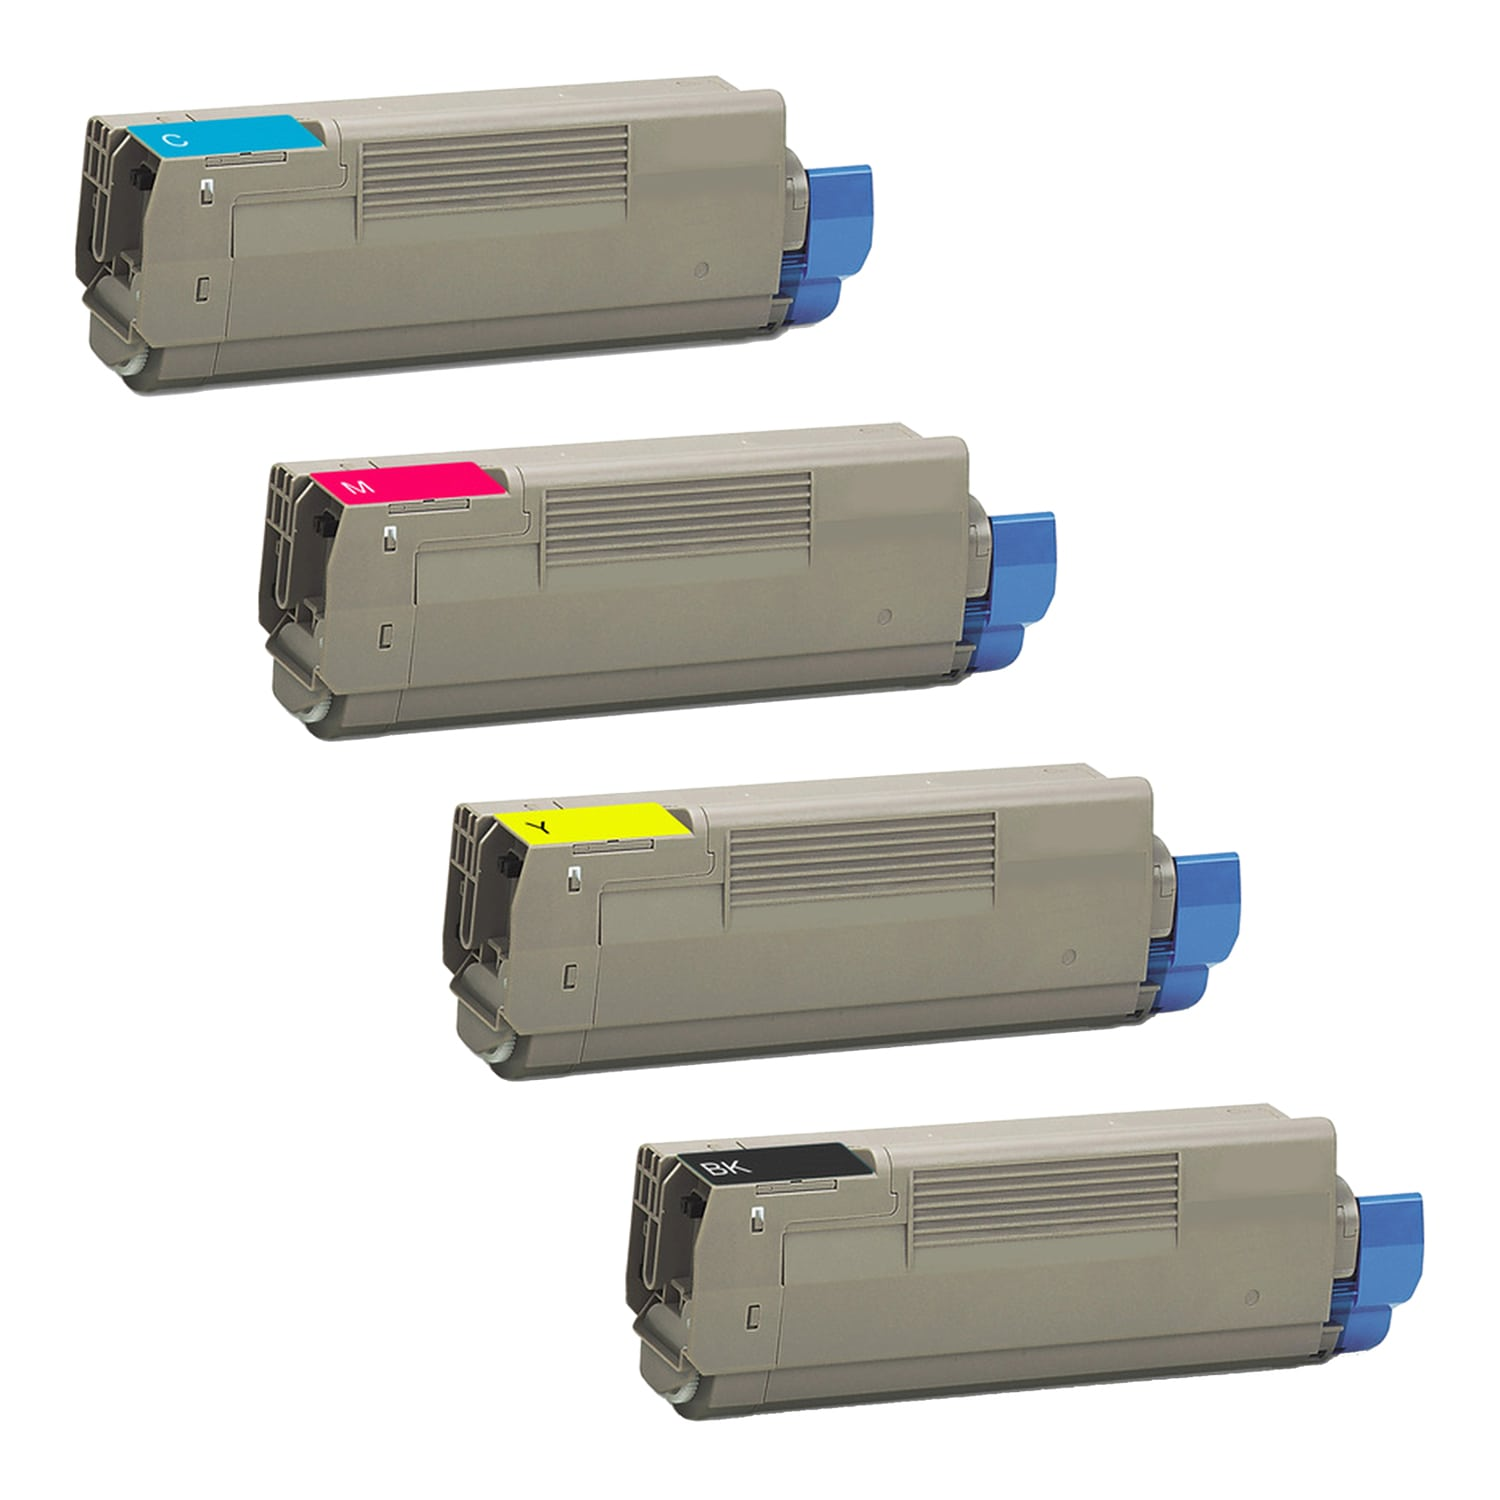 Compatible Okidata C5650 Toner High Capacity Pack - 4 Cartridges